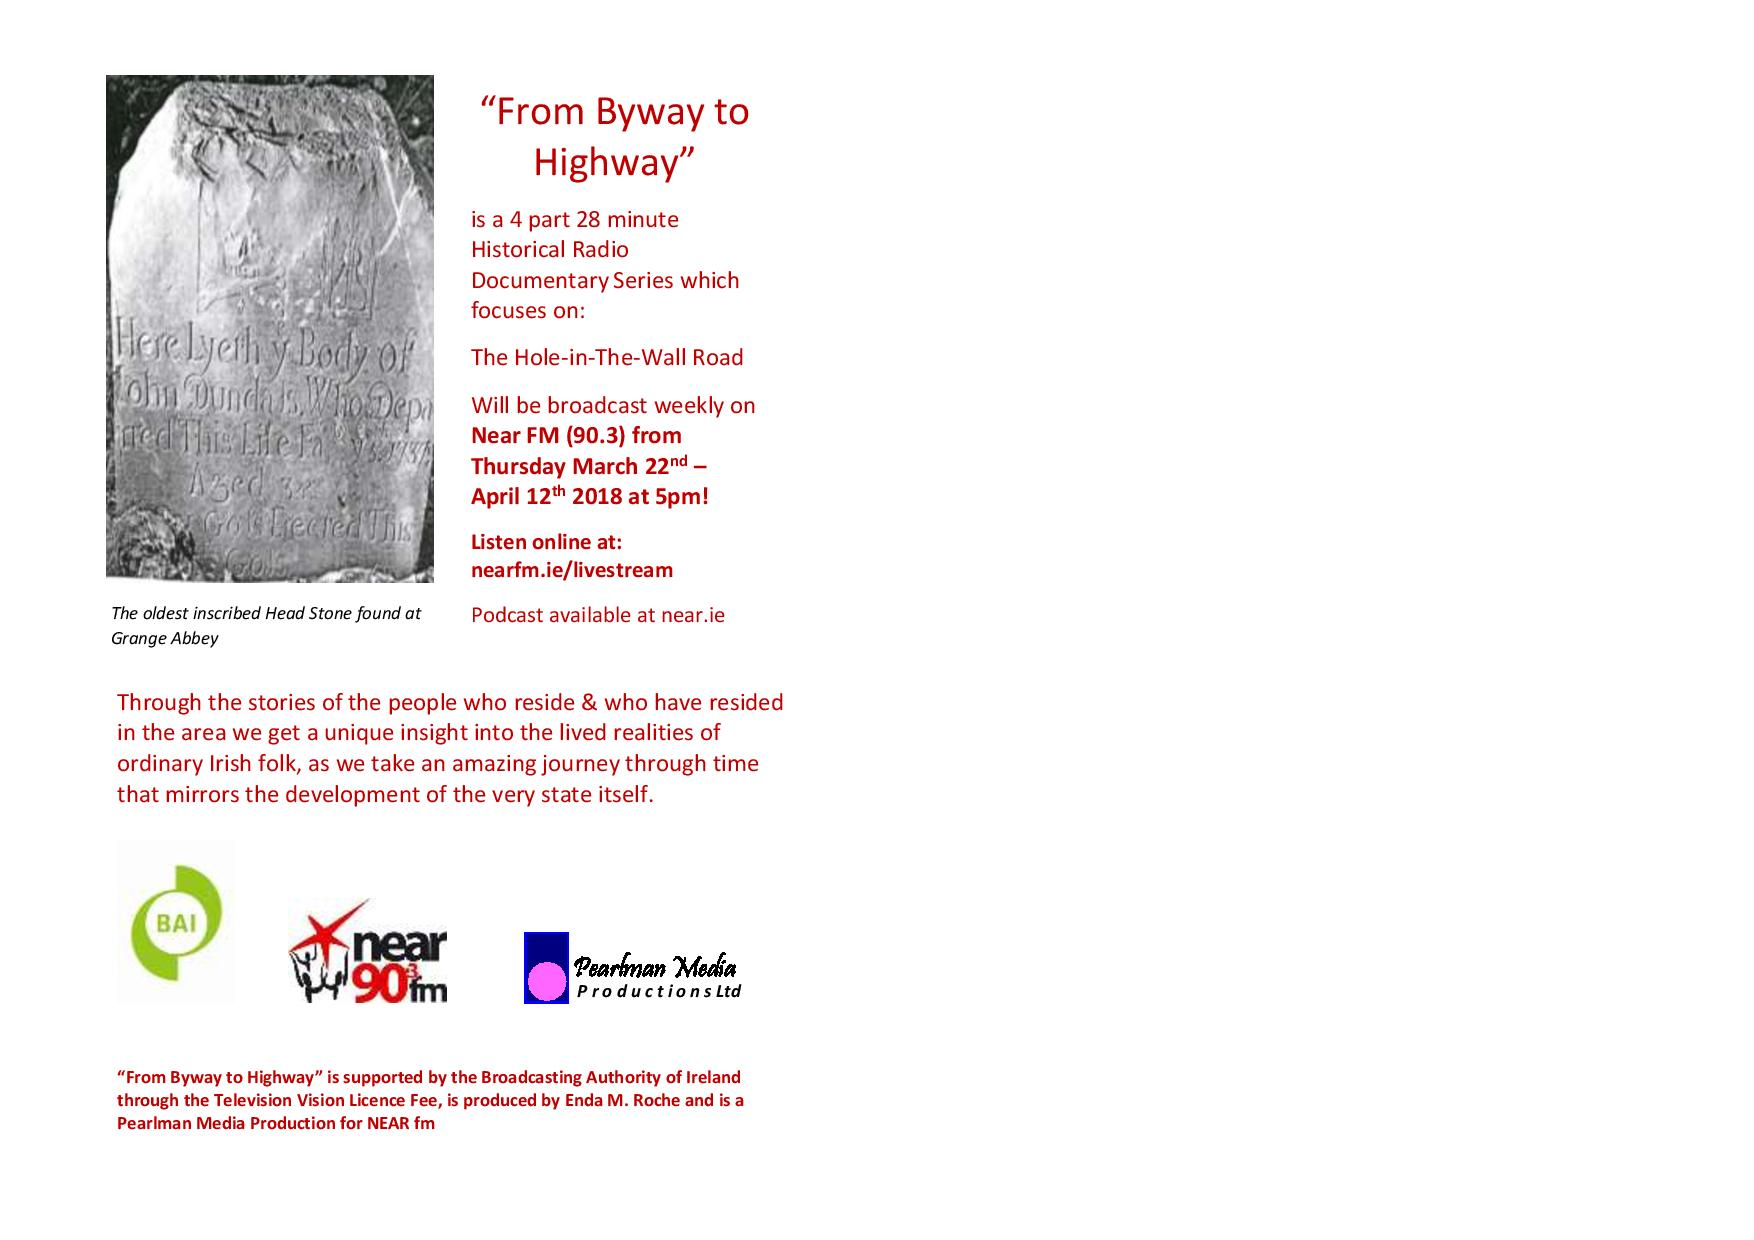 """Historical Radio Documentary series """"From Byway to Highway"""""""